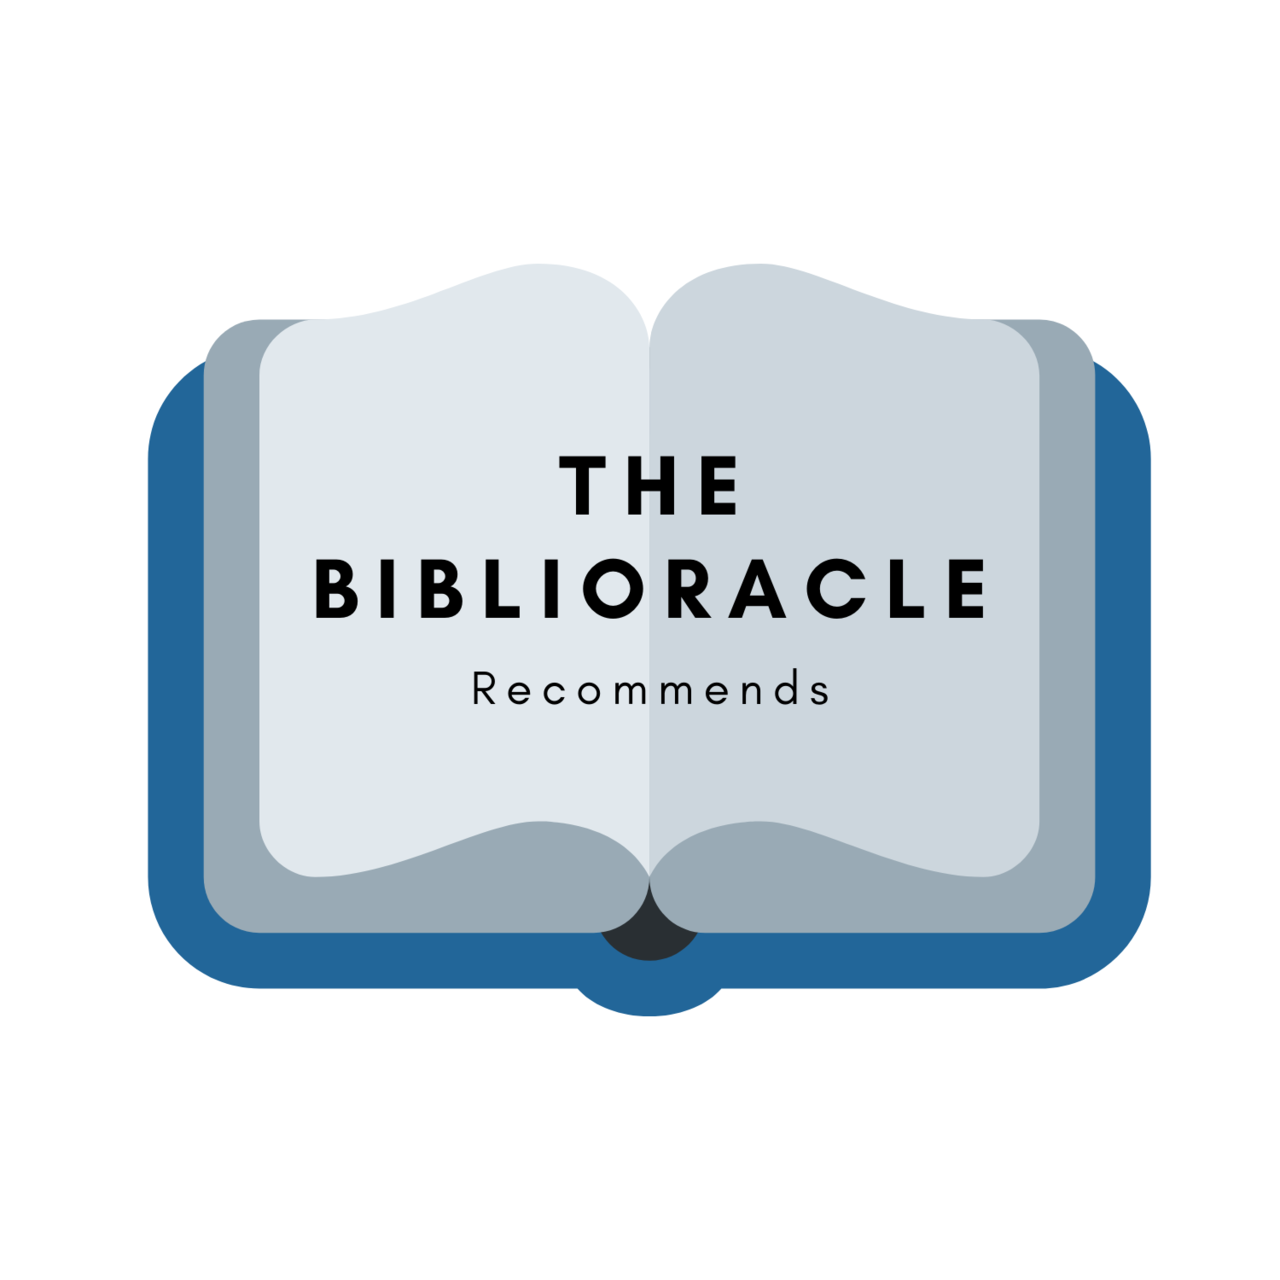 The Biblioracle Recommends